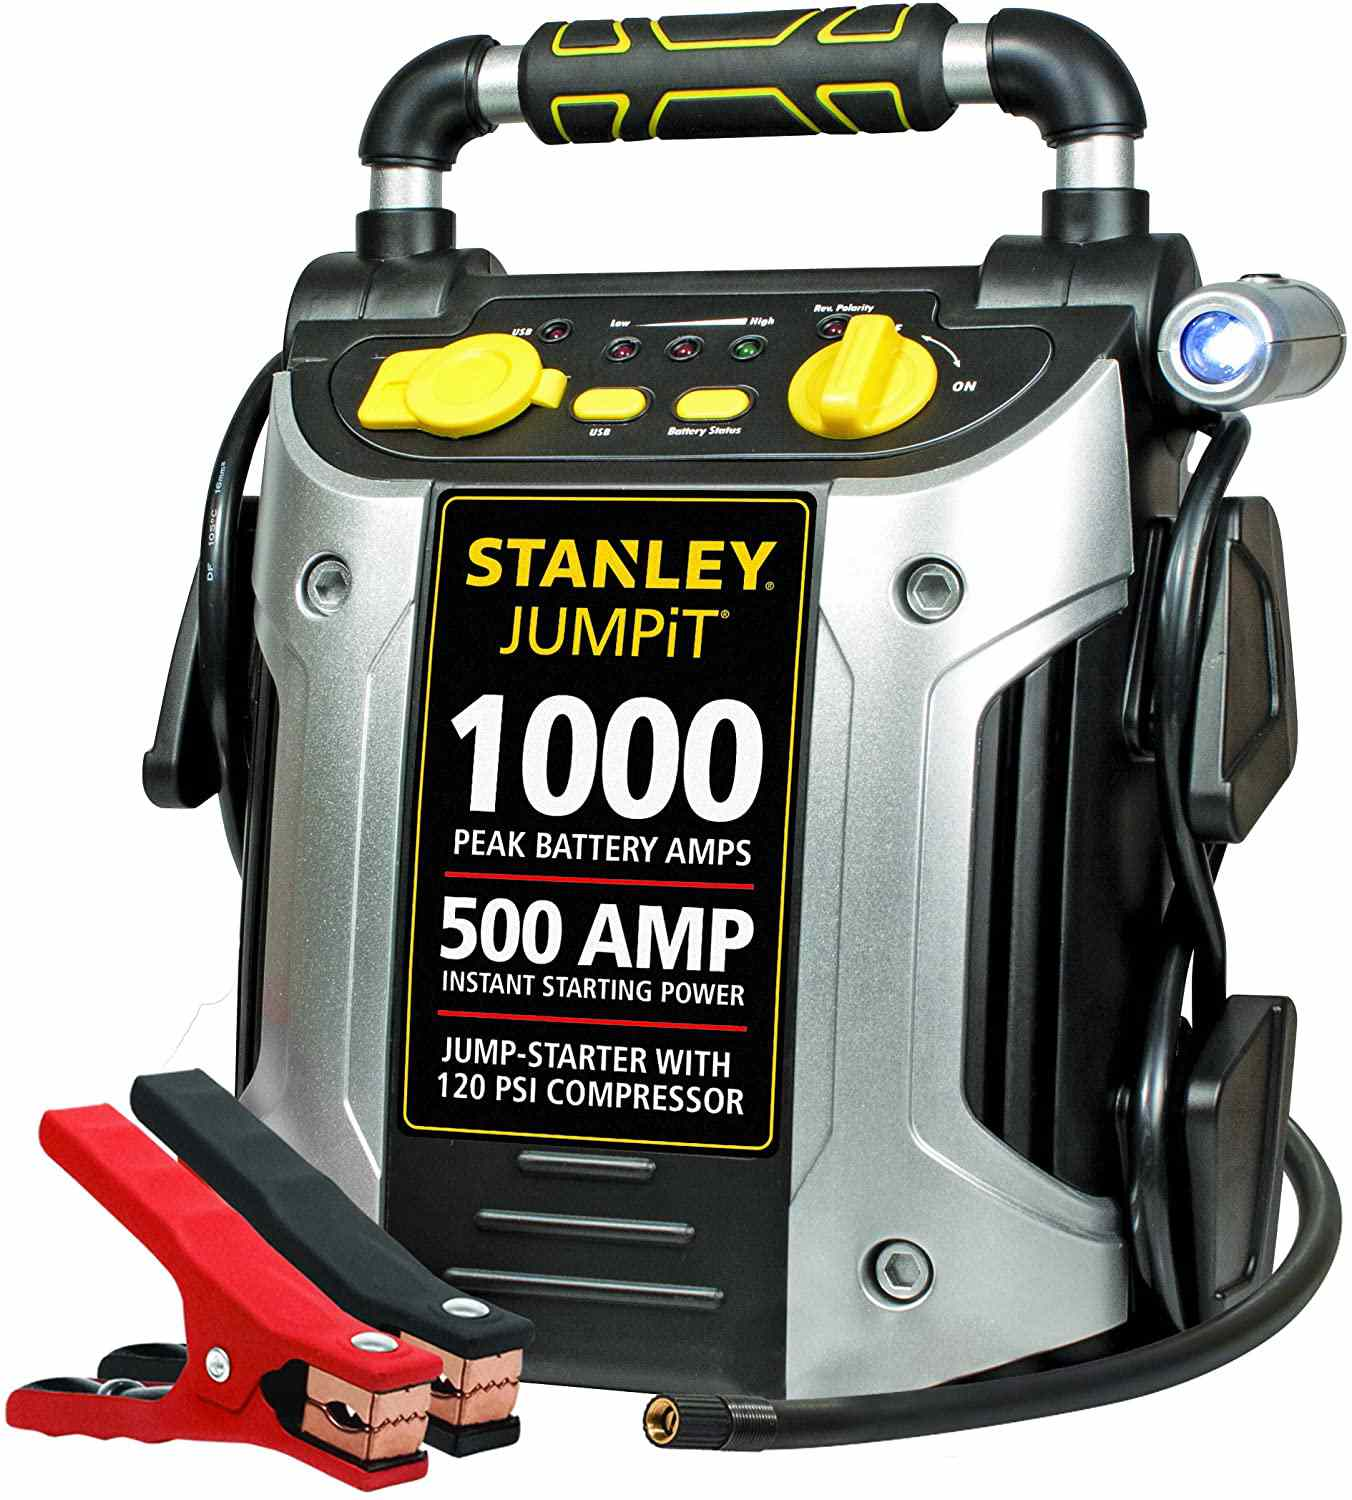 The Stanley J5C09 JUMPiT Portable Power Station will jumpstart your car.